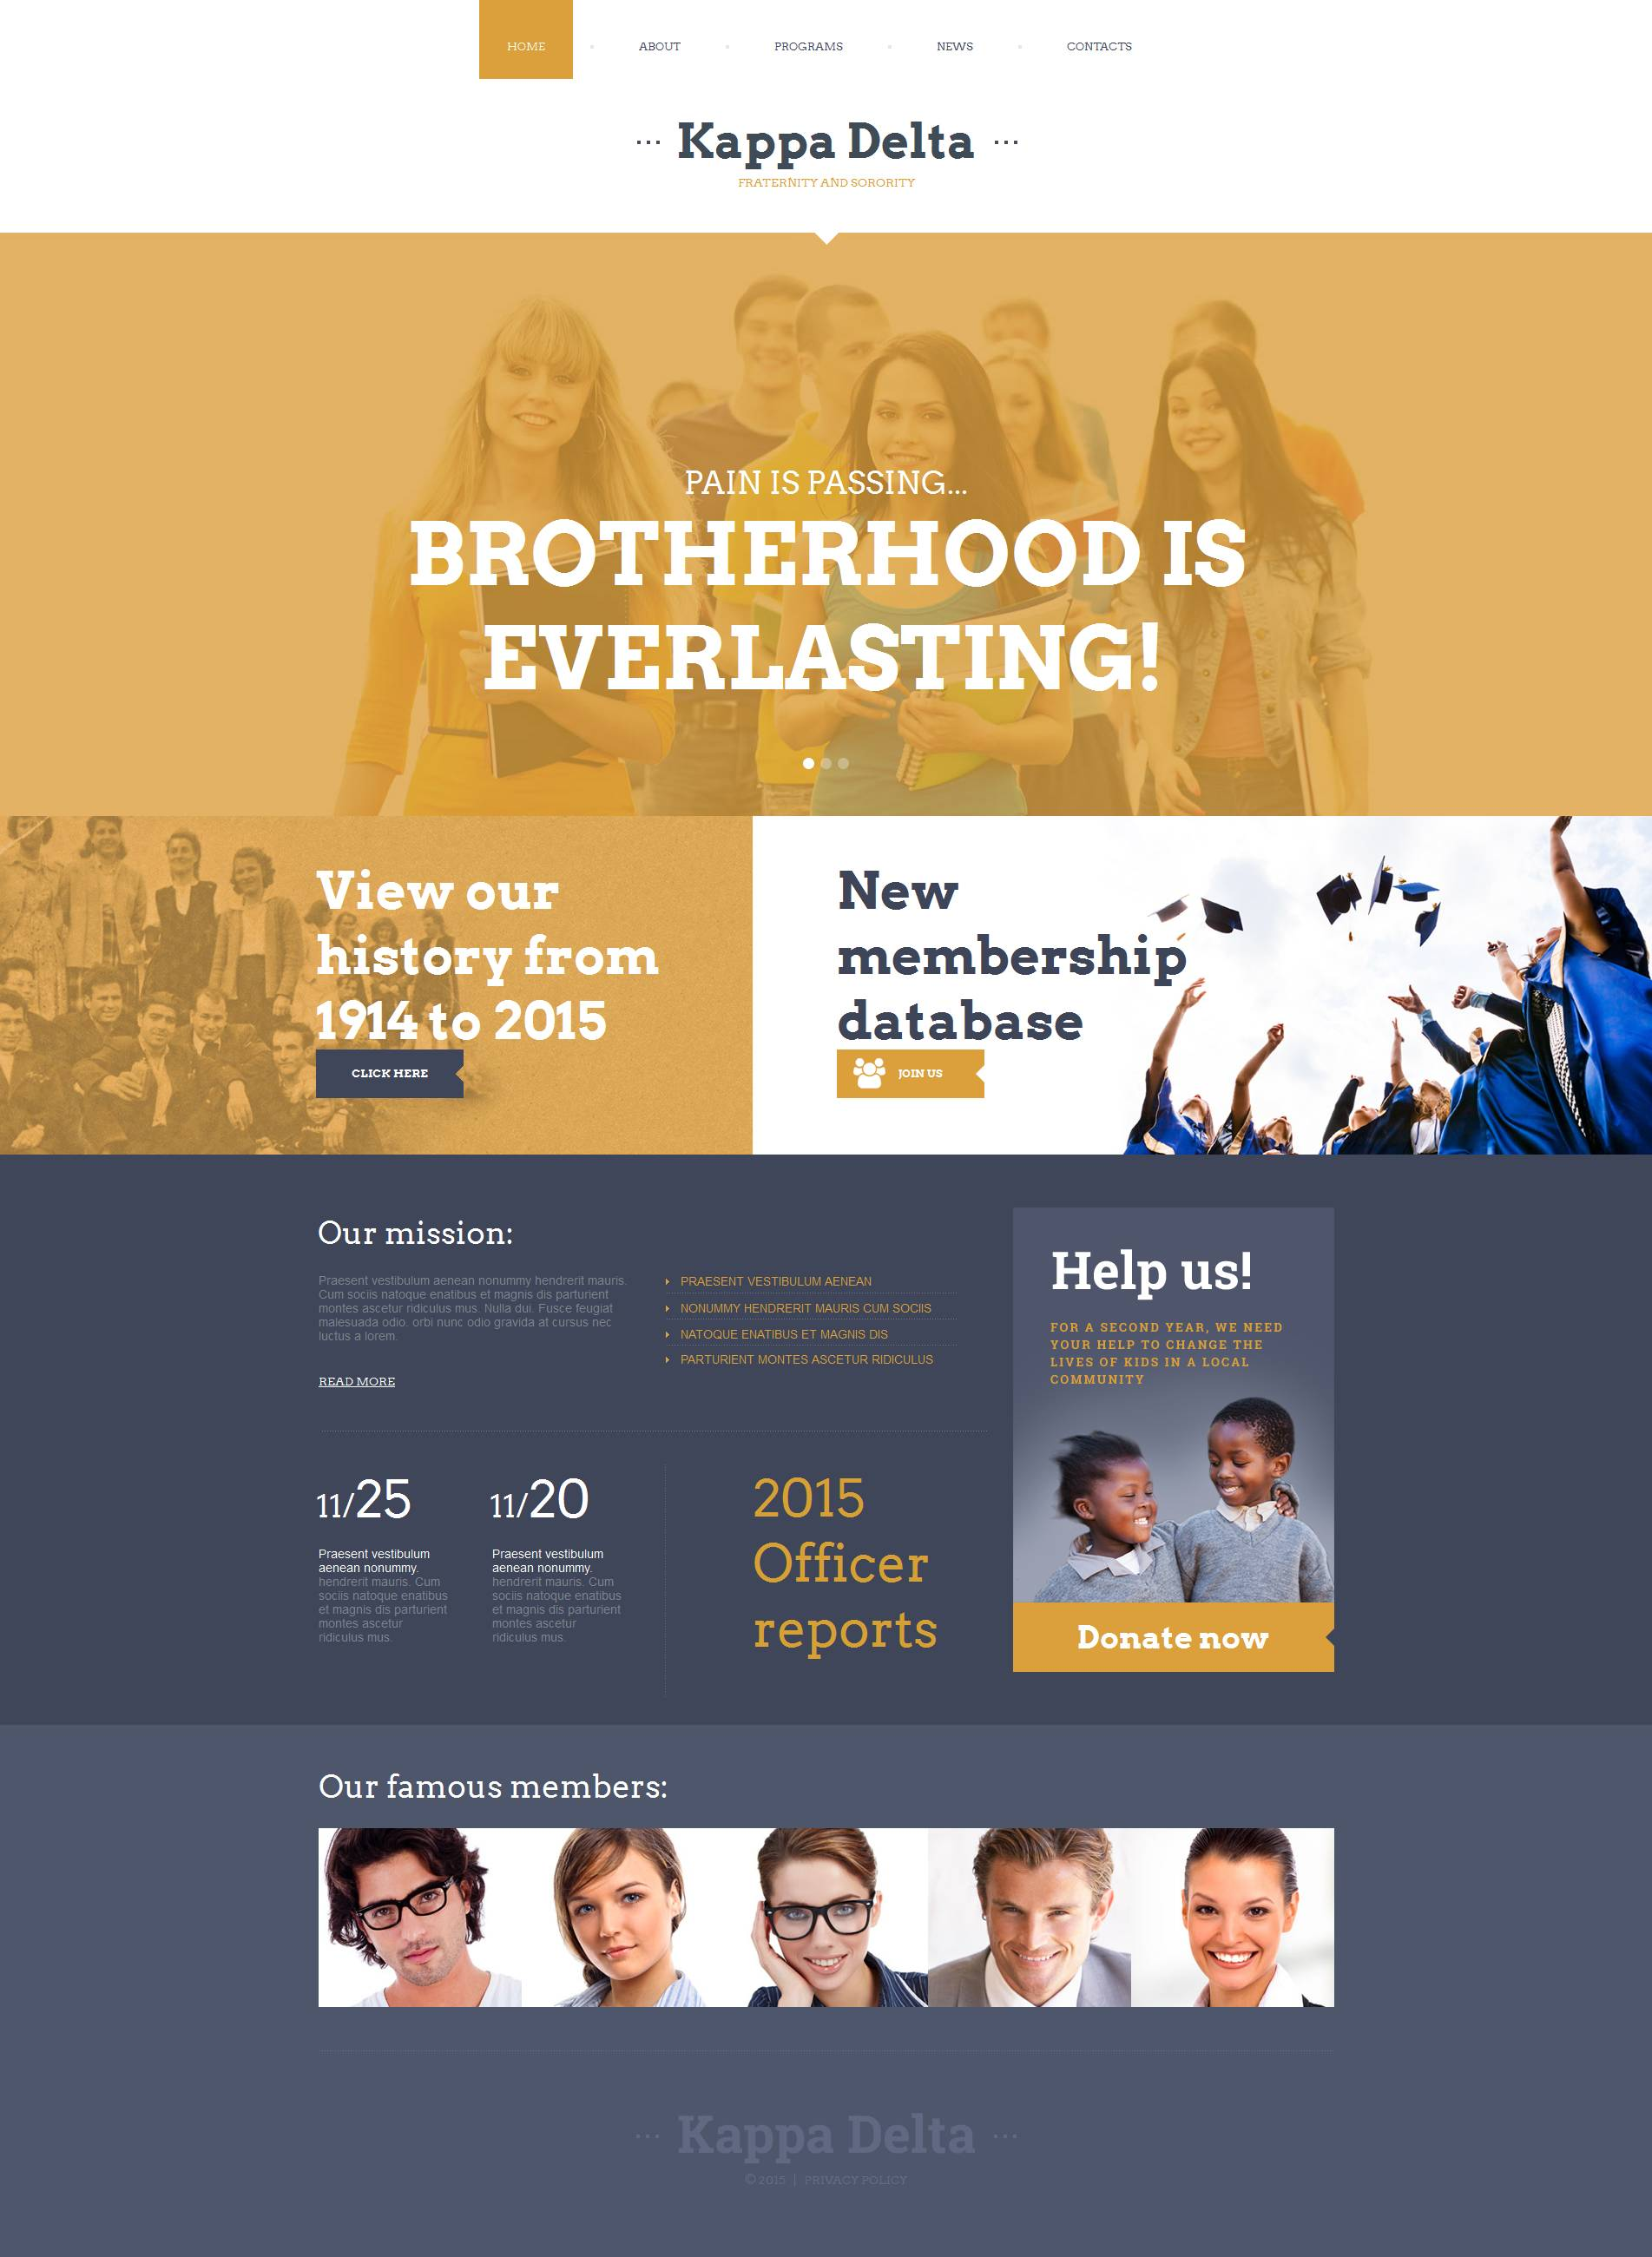 The Kappa Delta Moto CMS HTML Design 53057, one of the best Moto CMS HTML templates of its kind (education), also known as kappa delta Moto CMS HTML template, sorority Moto CMS HTML template, university Moto CMS HTML template, sisters Moto CMS HTML template, friends Moto CMS HTML template, friendship Moto CMS HTML template, youth Moto CMS HTML template, membership Moto CMS HTML template, committee Moto CMS HTML template, girls and related with kappa delta, sorority, university, sisters, friends, friendship, youth, membership, committee, girls, etc.